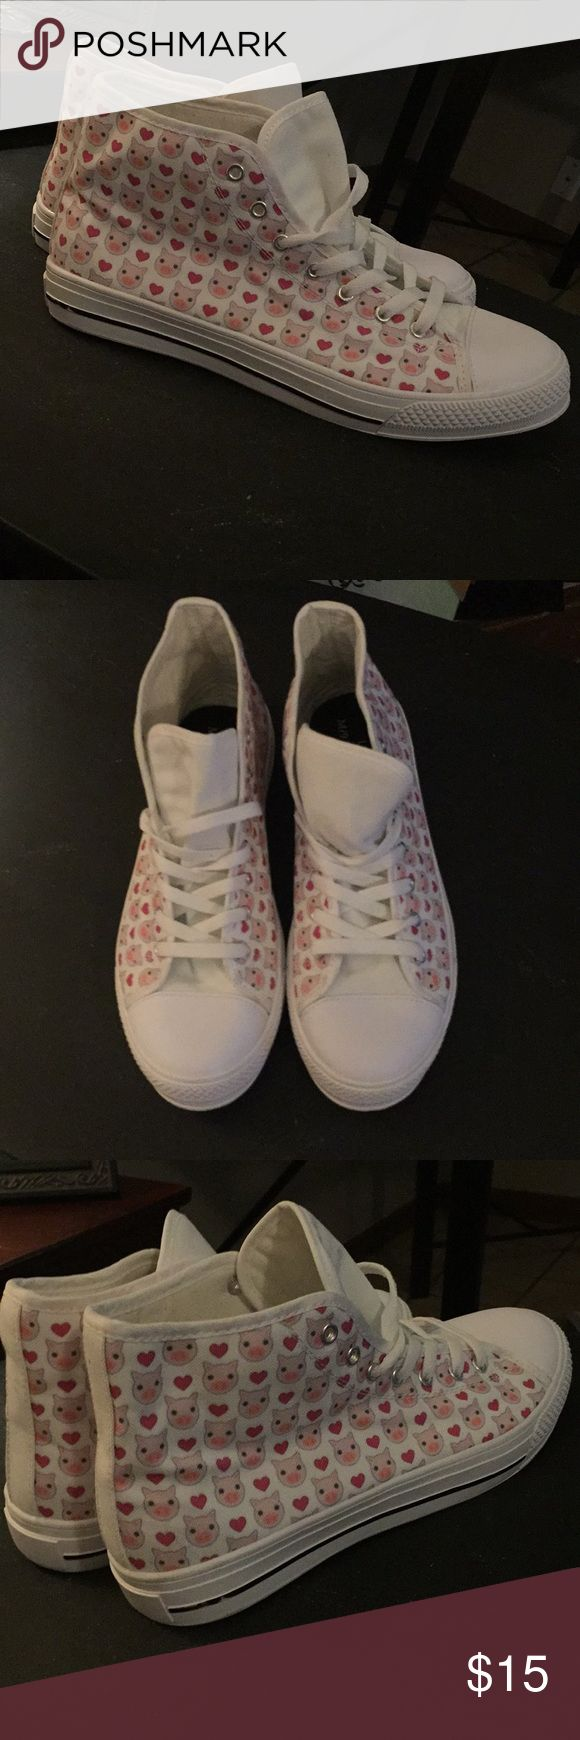 NEW!!!!!  Pig canvas high top tennis shoes. Sz 10 Super cute white with little pigs all over. Like converse in style. ***Due to unplanned medical bills from a recent surgery I had I am downsizing my closets and decor. ASAP to pay things off!!!  There is nothing wrong with anything listed and a lot are brand new.  Please feel free to bundle or make reasonable offers. Thank you for looking at my listings. I appreciate it greatly!!!*** Shoes Sneakers